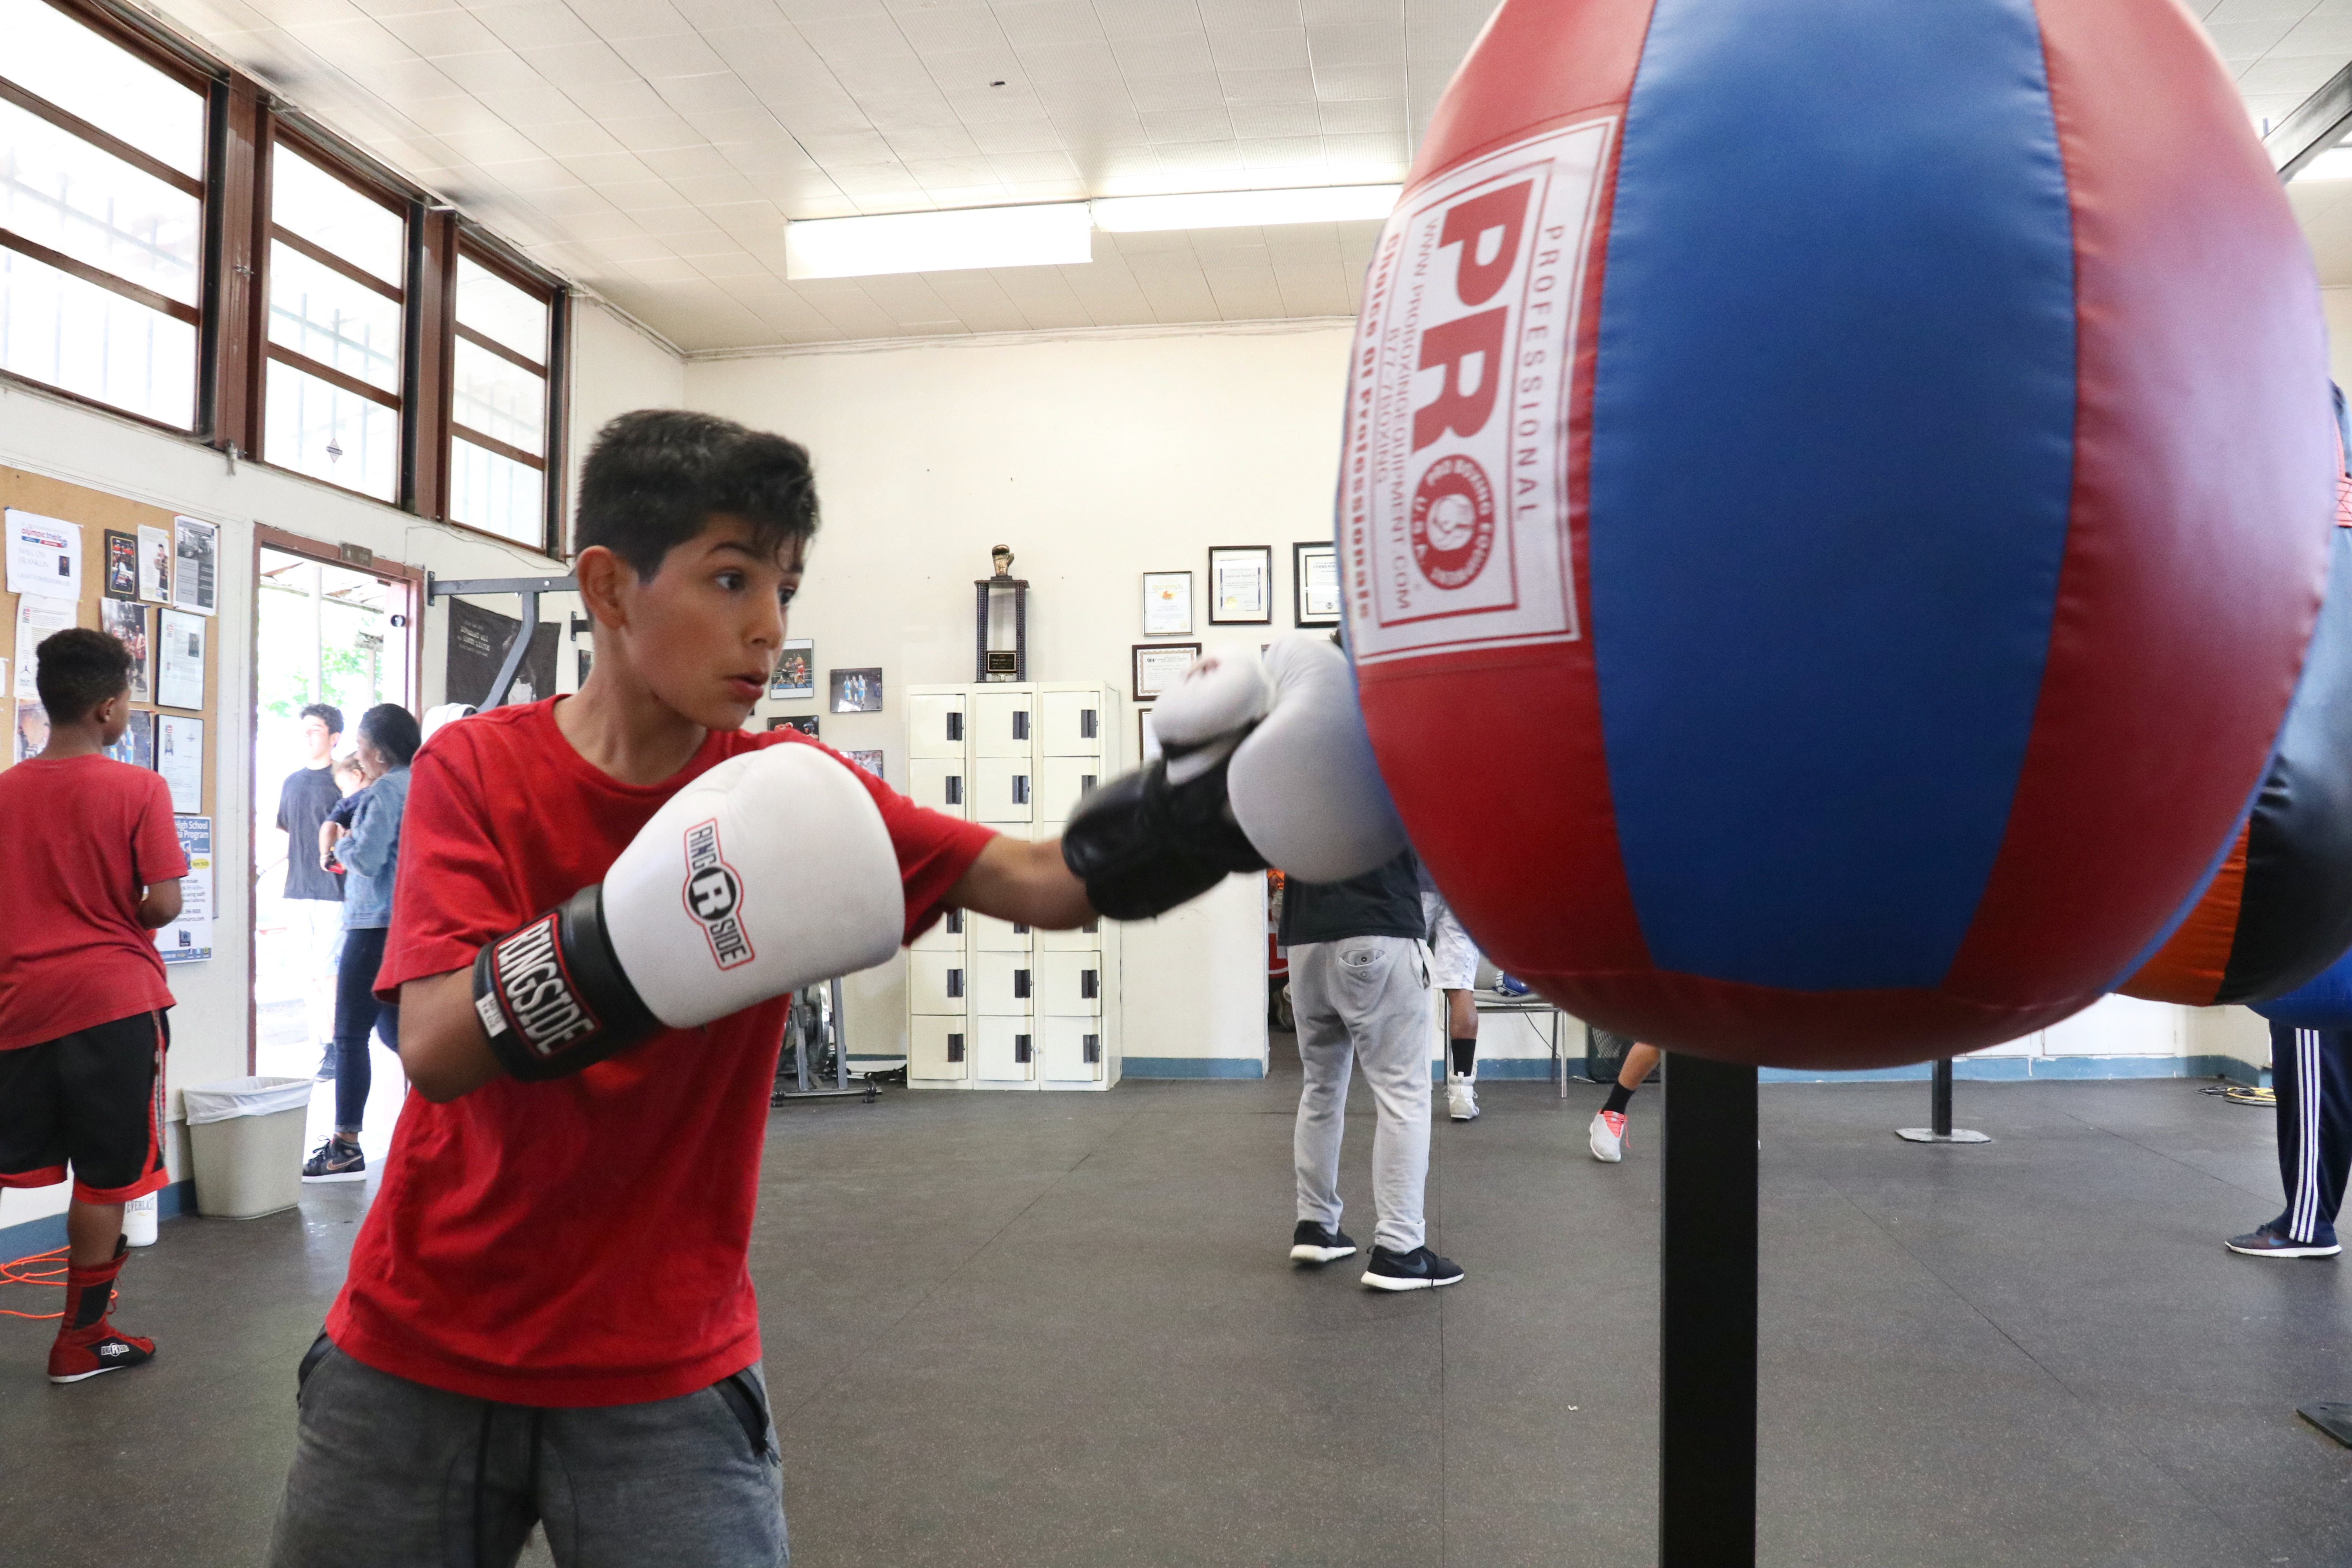 Boxing gym giving youth a 'fighting chance inland